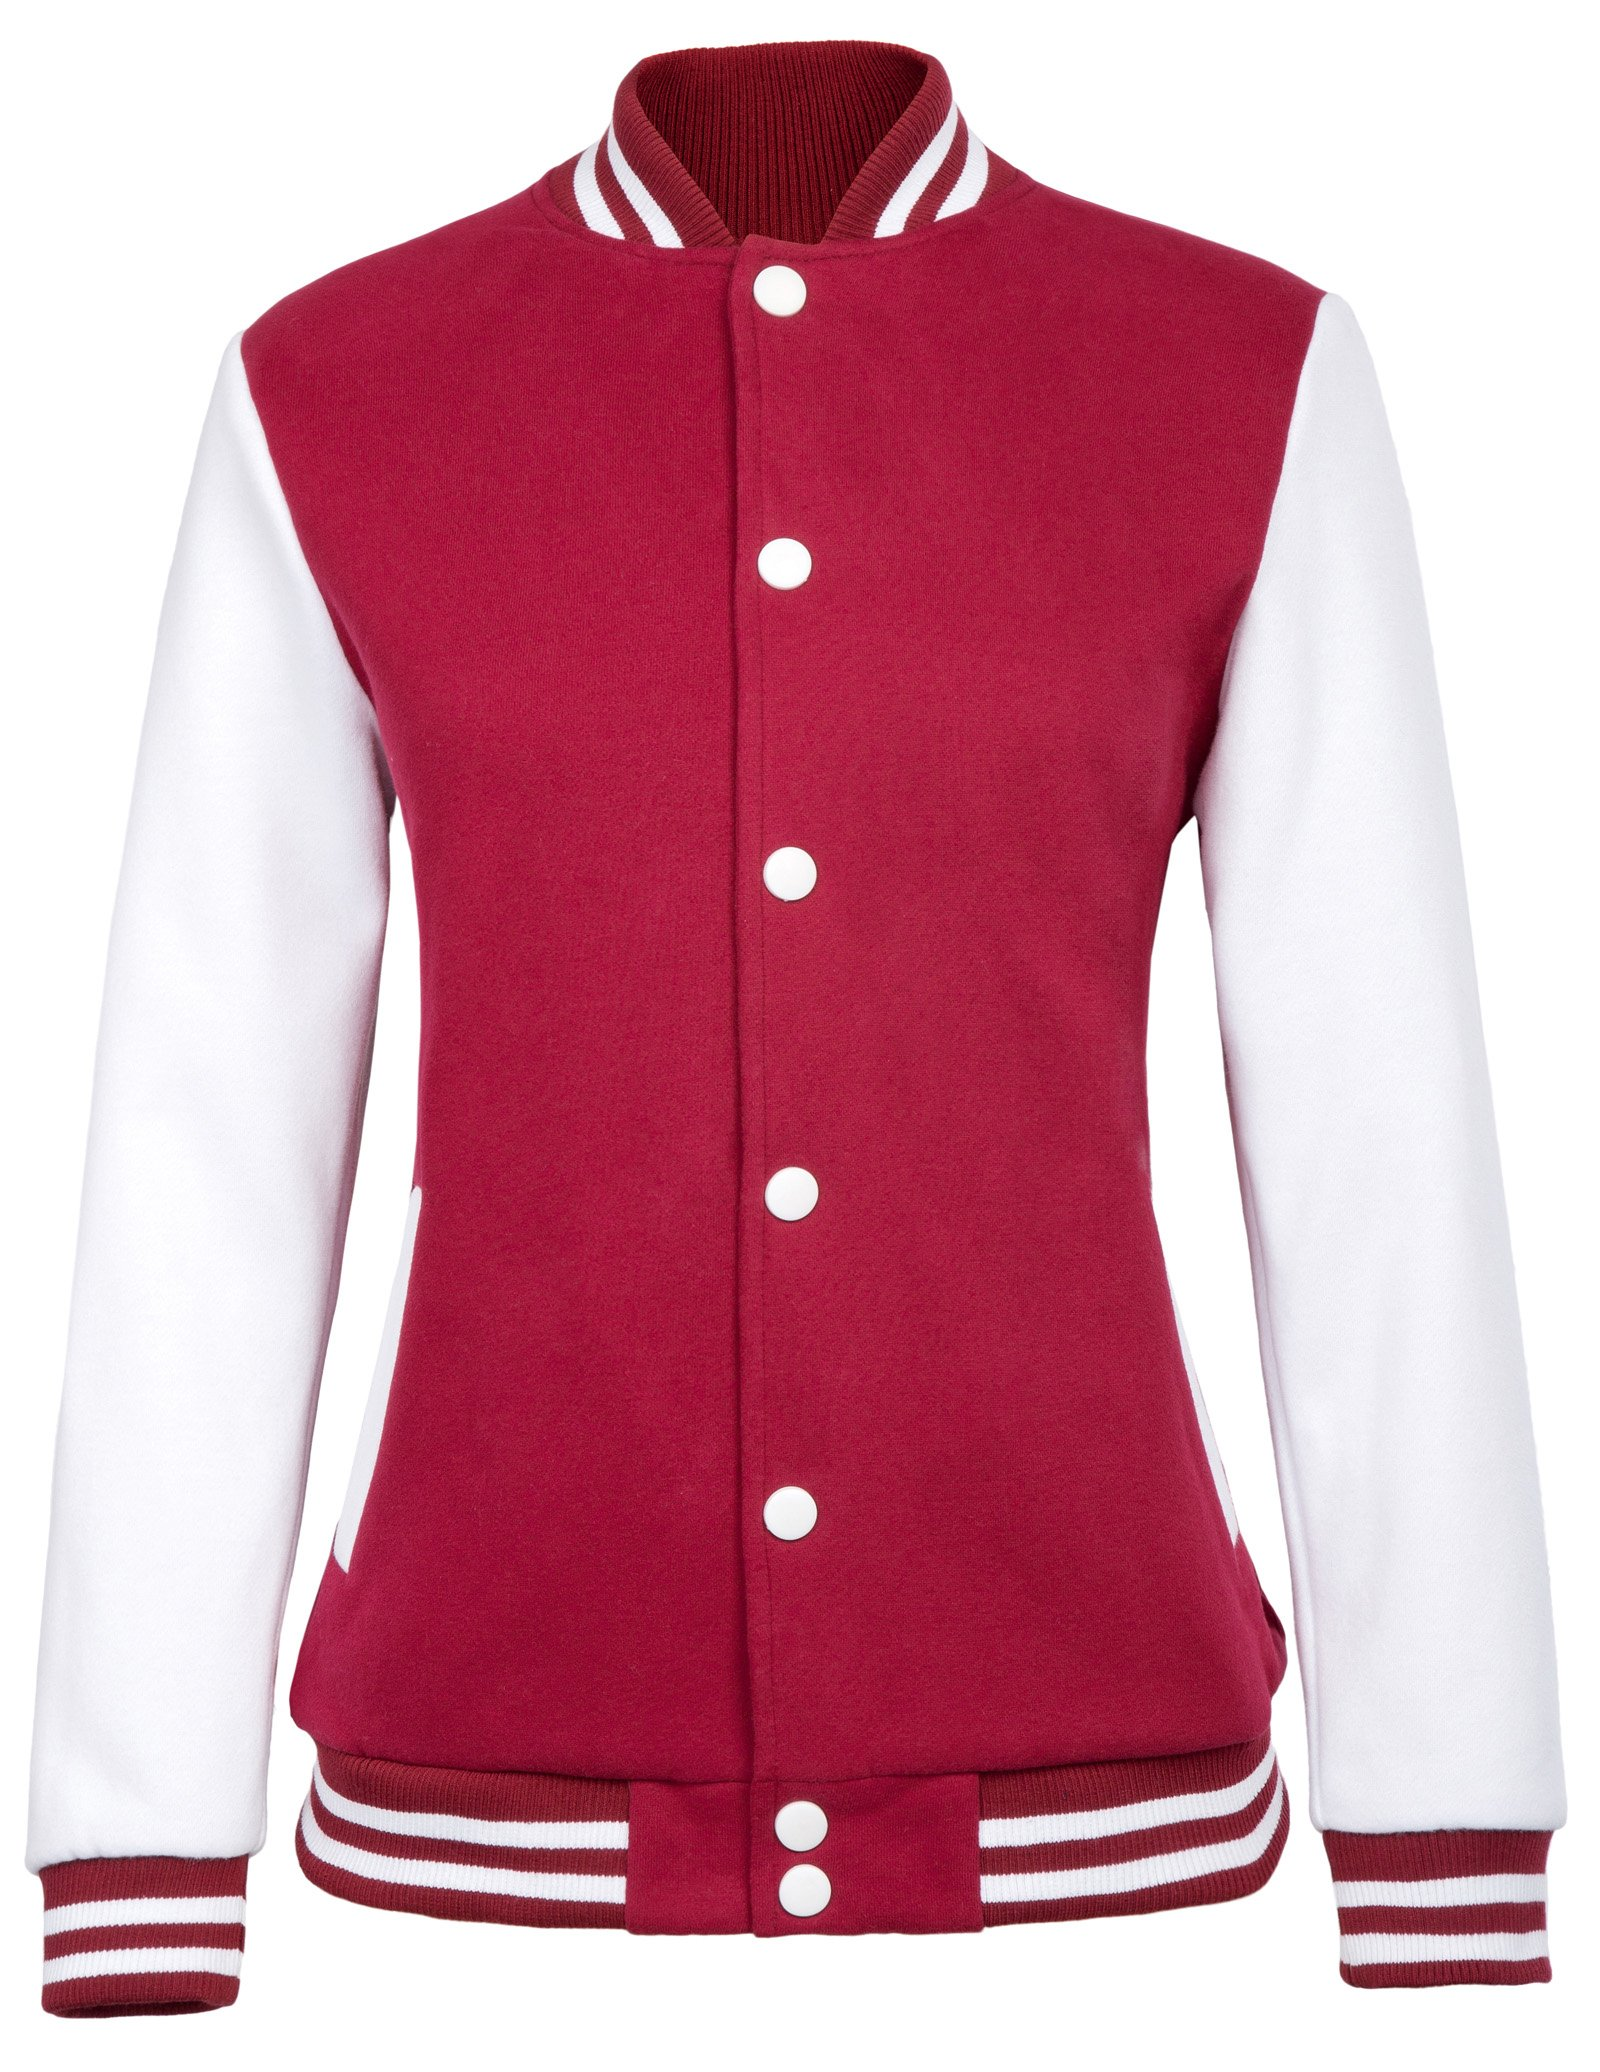 JACK SMITH Women's Street Style Baseball Uniform Coat Bomber Jackets (M,Red 717)